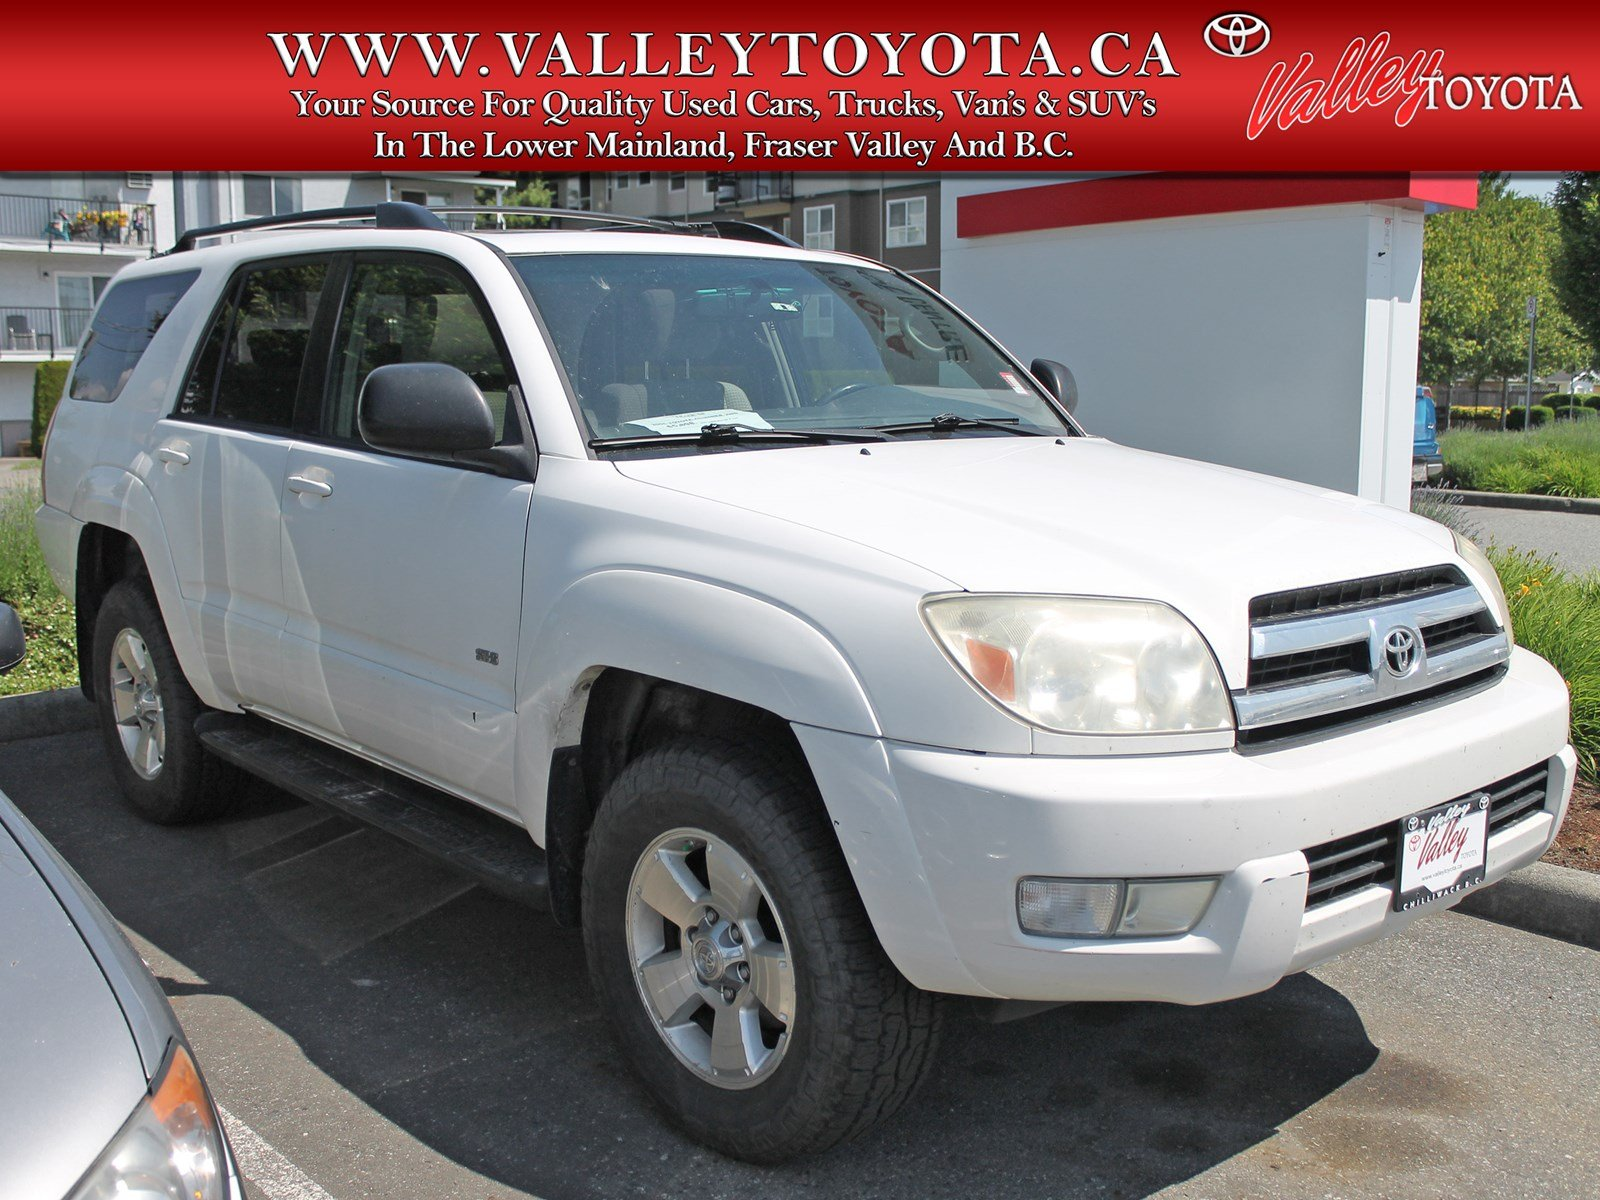 Pre-Owned 2005 Toyota 4Runner 2WD Fixer-Upper